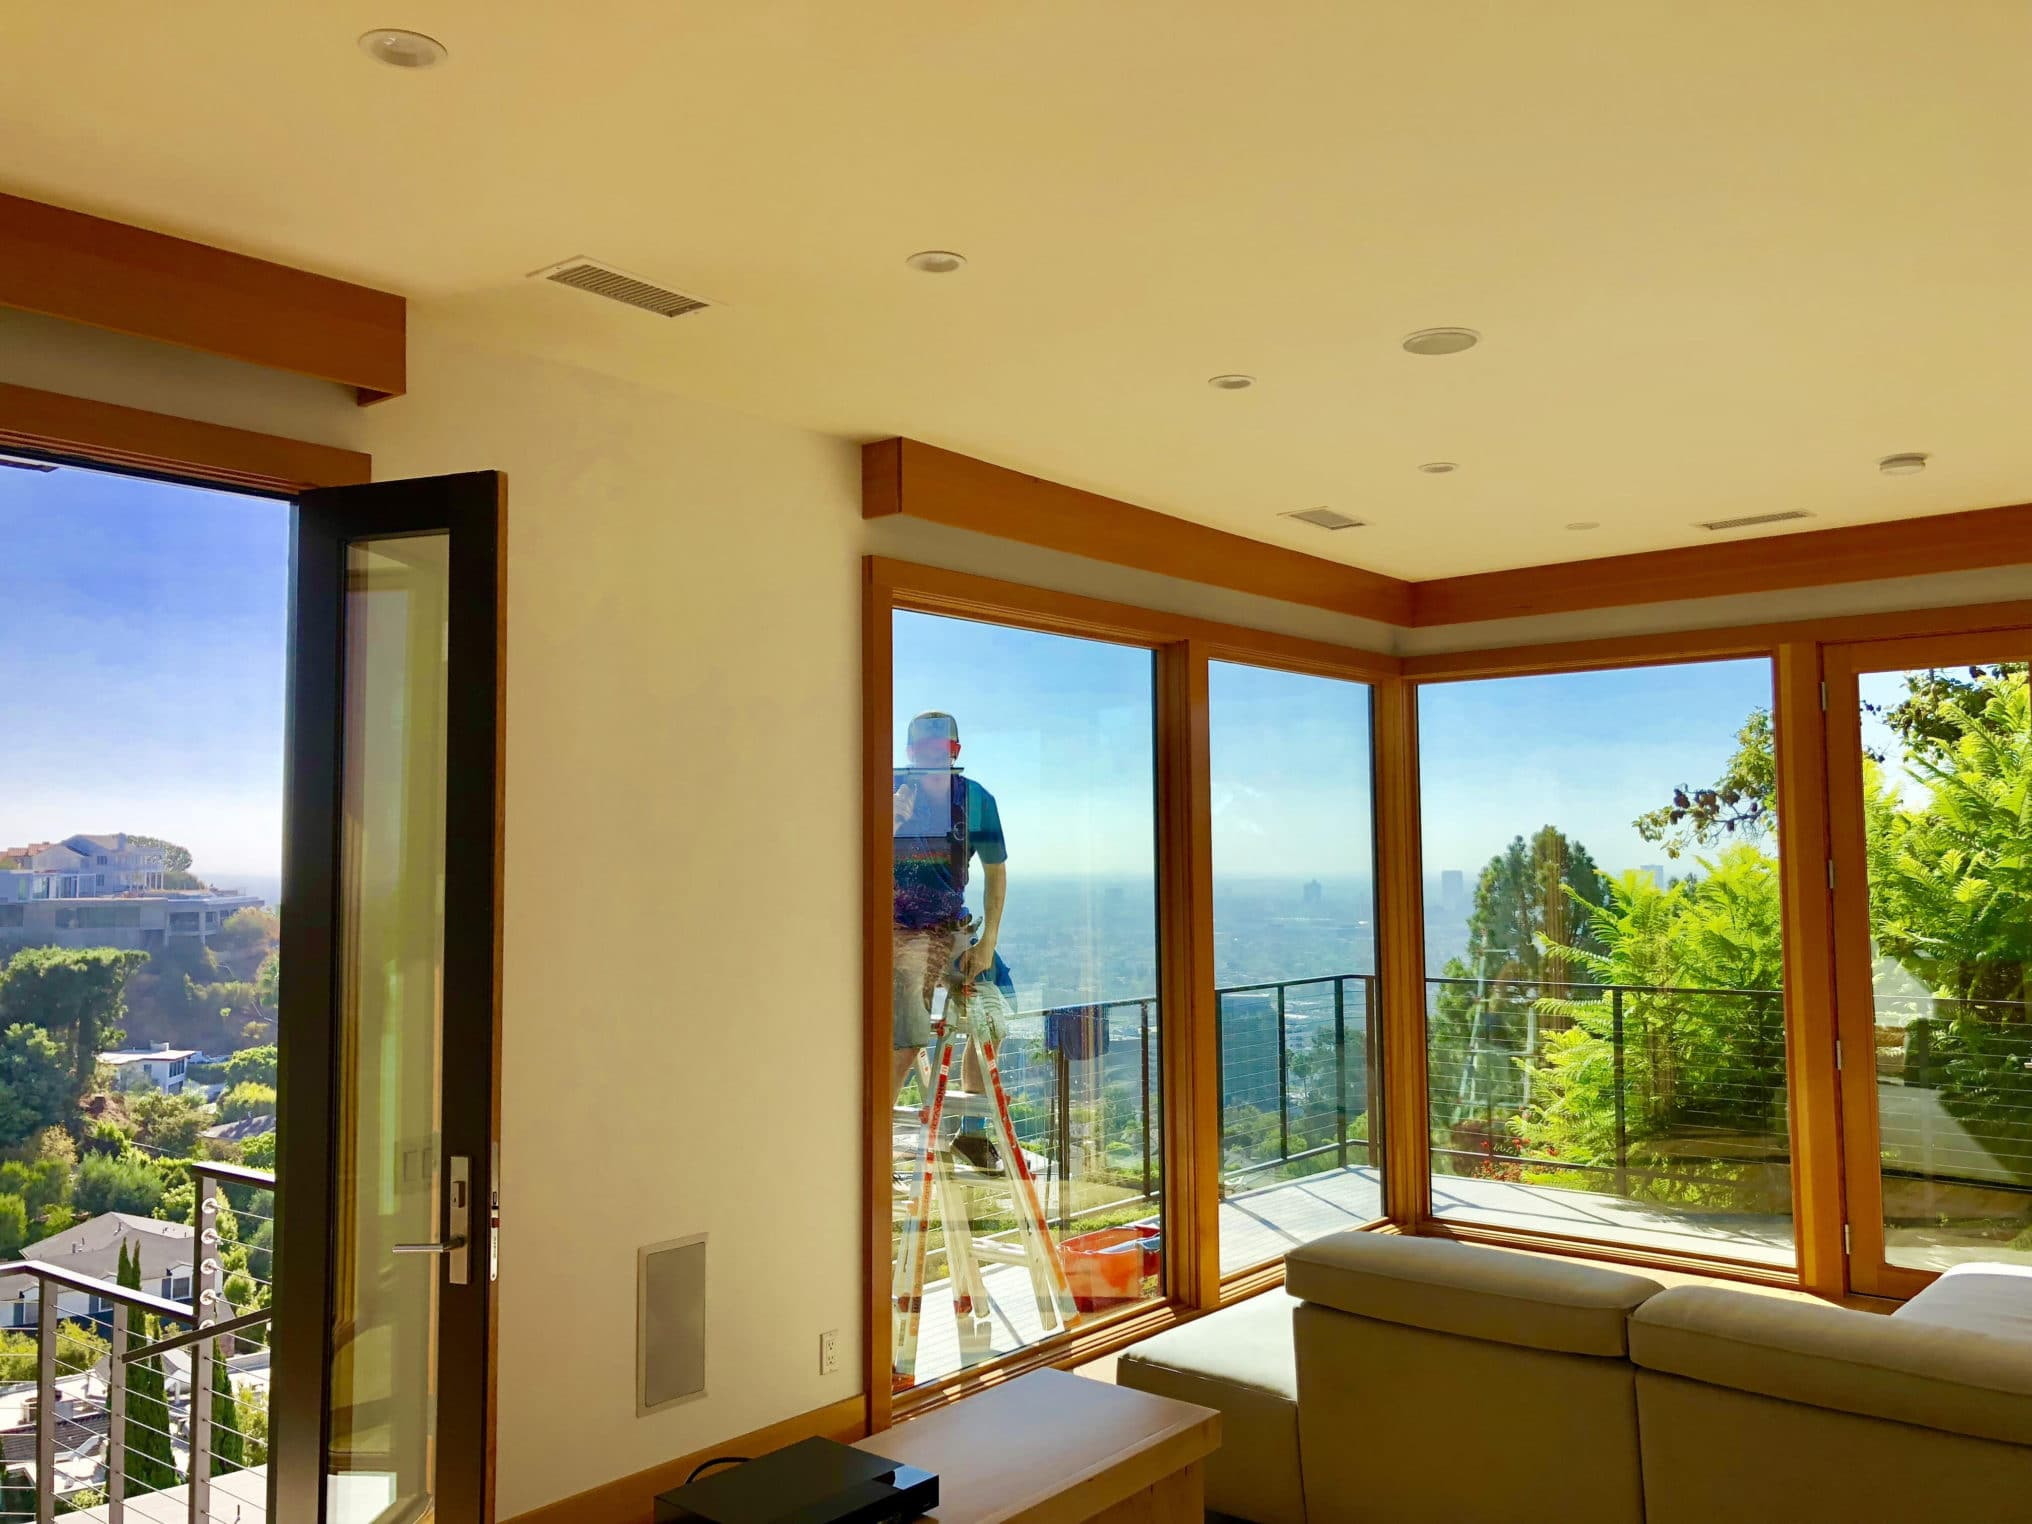 Los Angeles Residential Window Cleaning Tips: Hard Water Stains